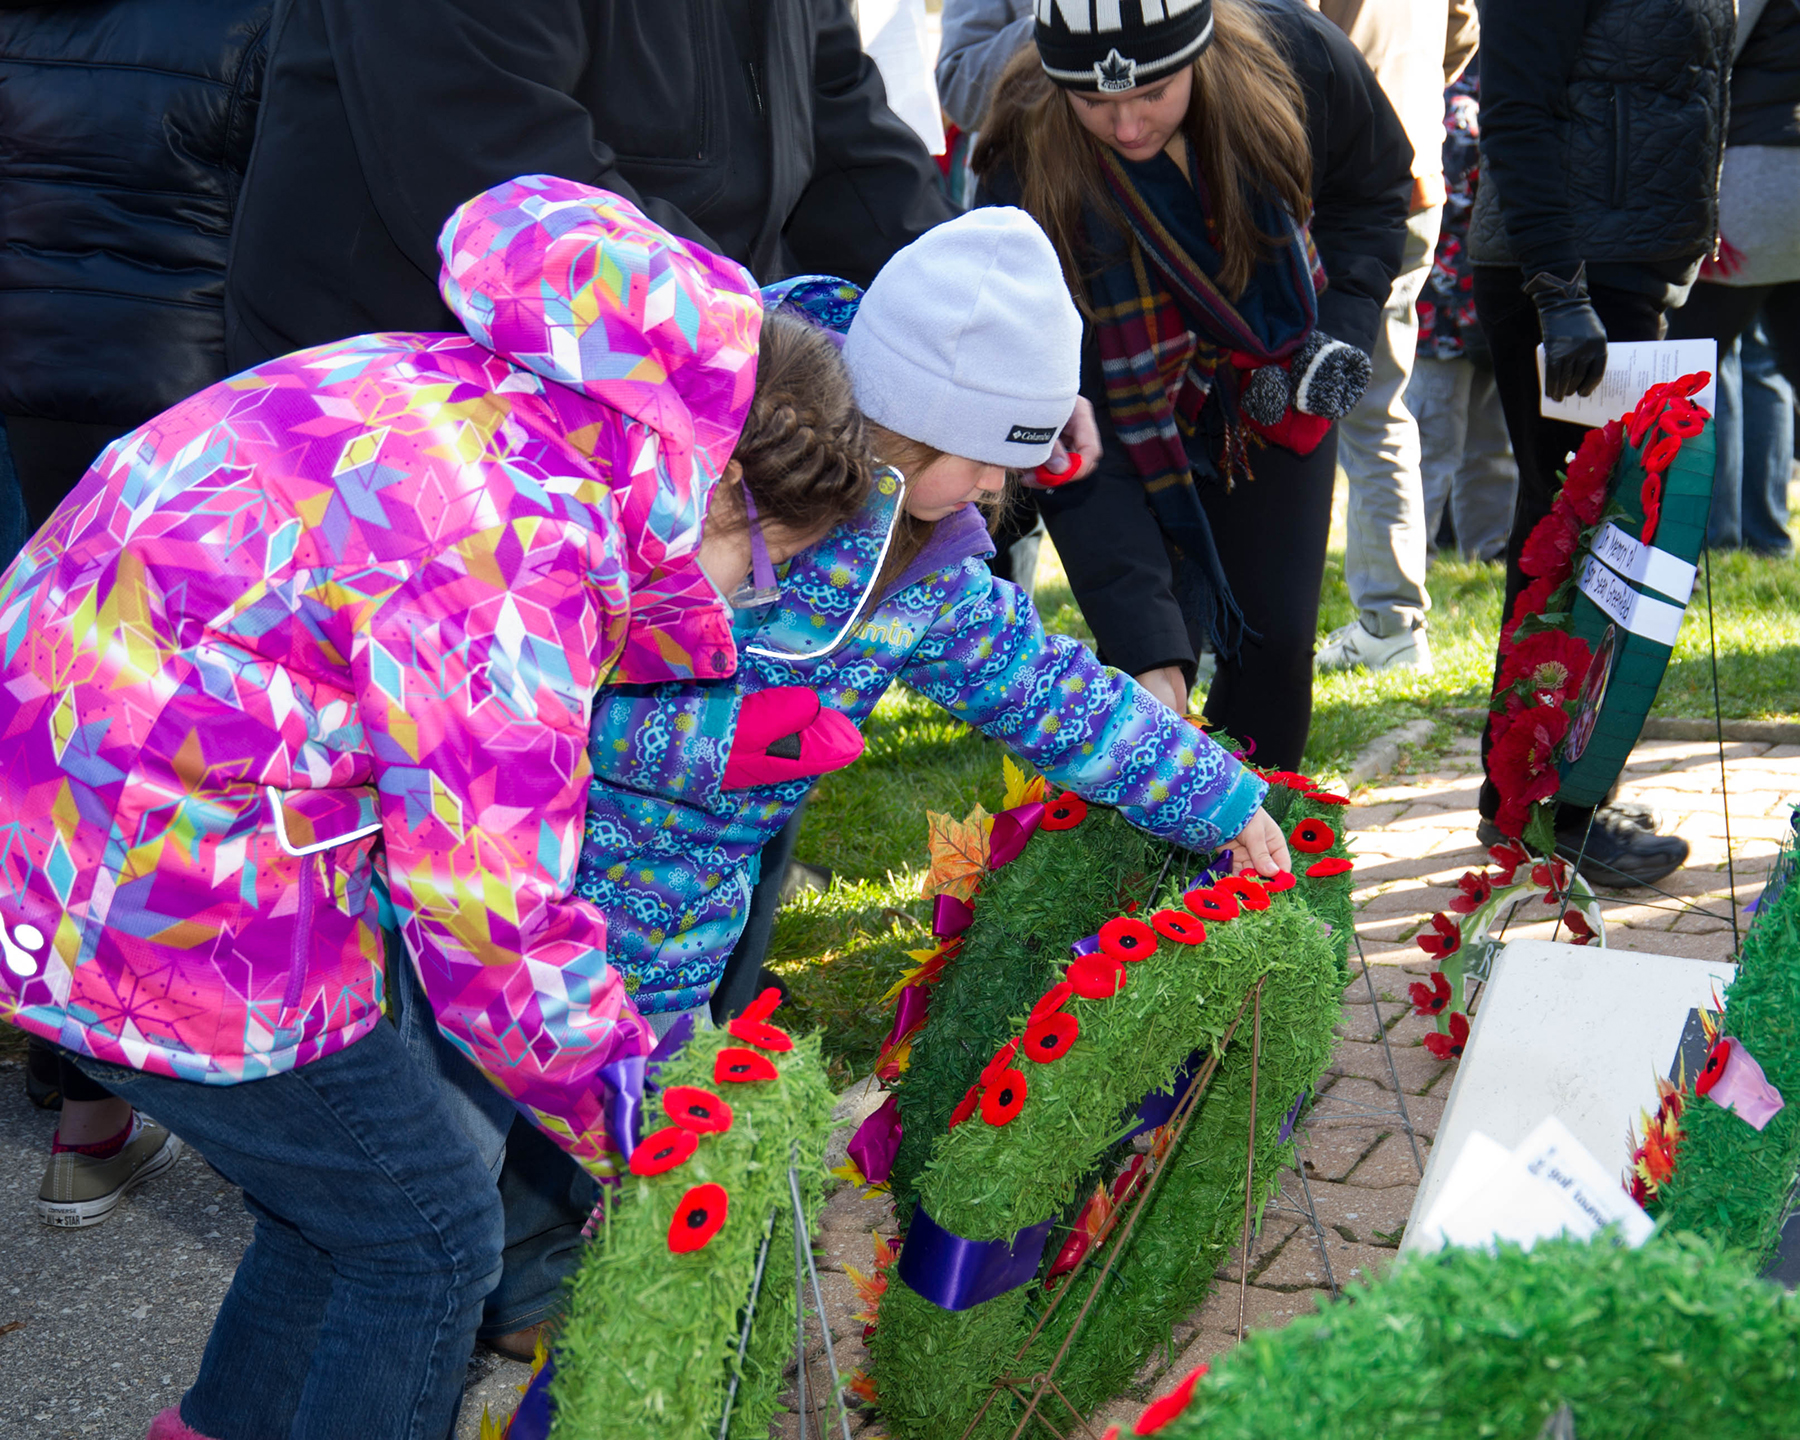 Children leave their poppies on wreaths in Bruce Park, Winnipeg, Manitoba, after the Remembrance Day ceremony on November 11, 2016. PHOTO: Corporal Joey Beaudin, WG2016-0510-028